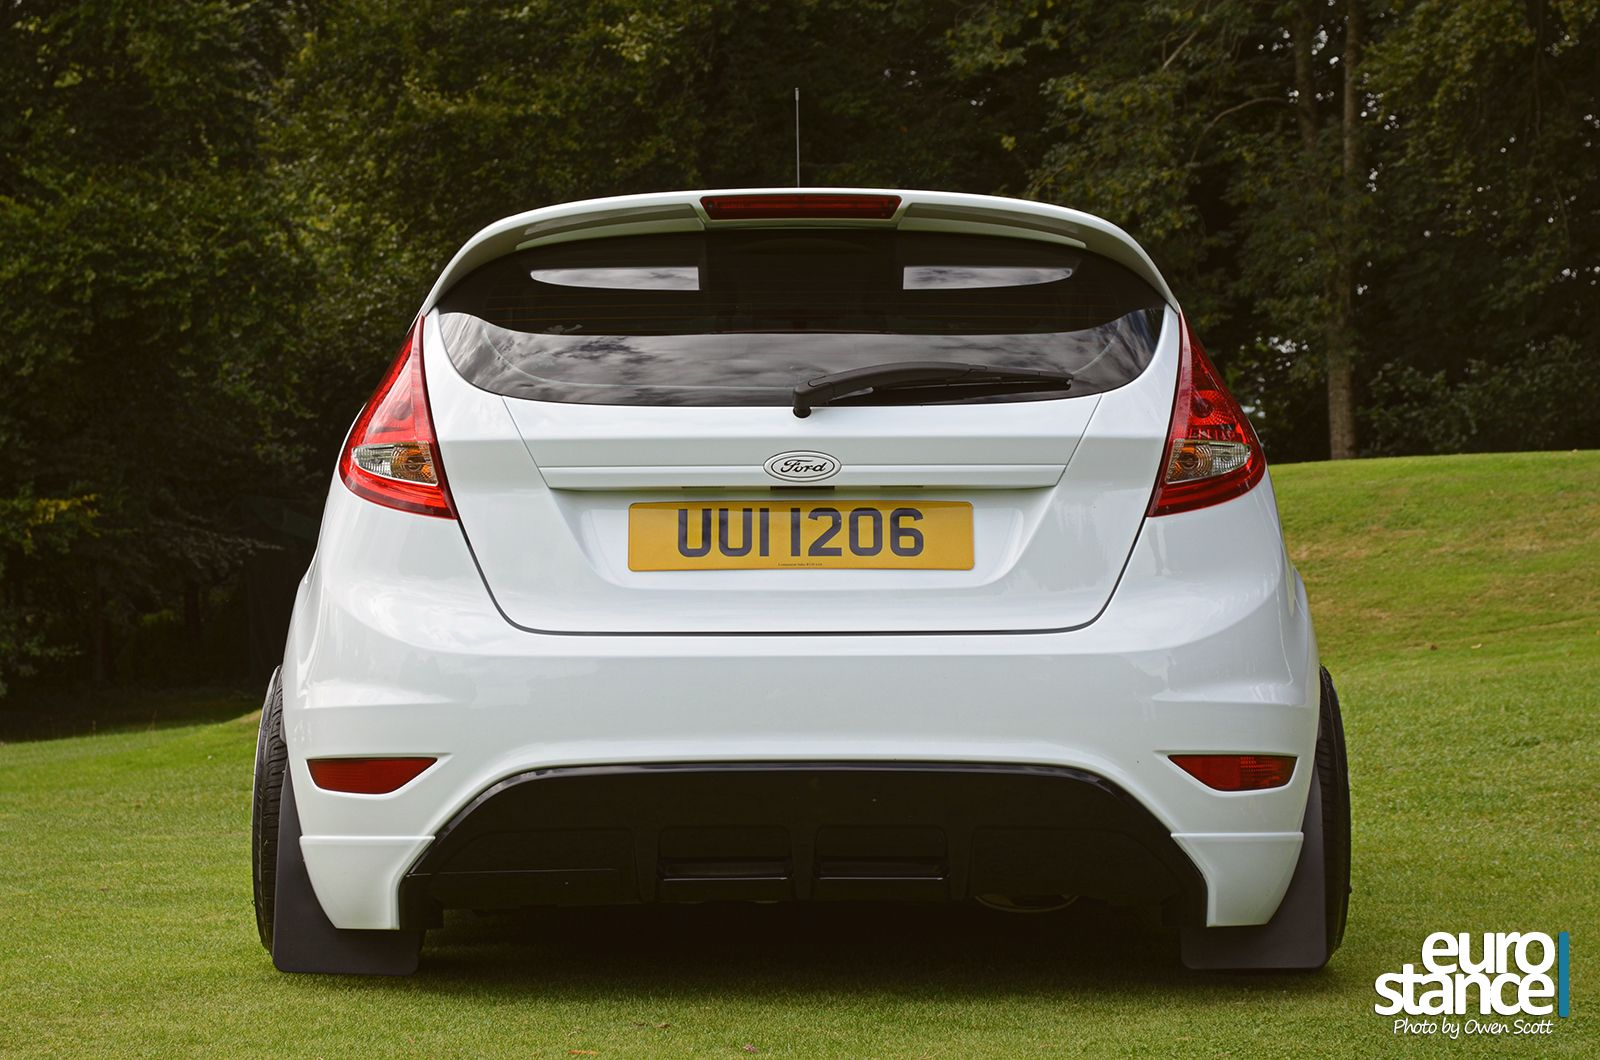 stephen chambers mk7 ford fiesta on hydraulics stance. Black Bedroom Furniture Sets. Home Design Ideas